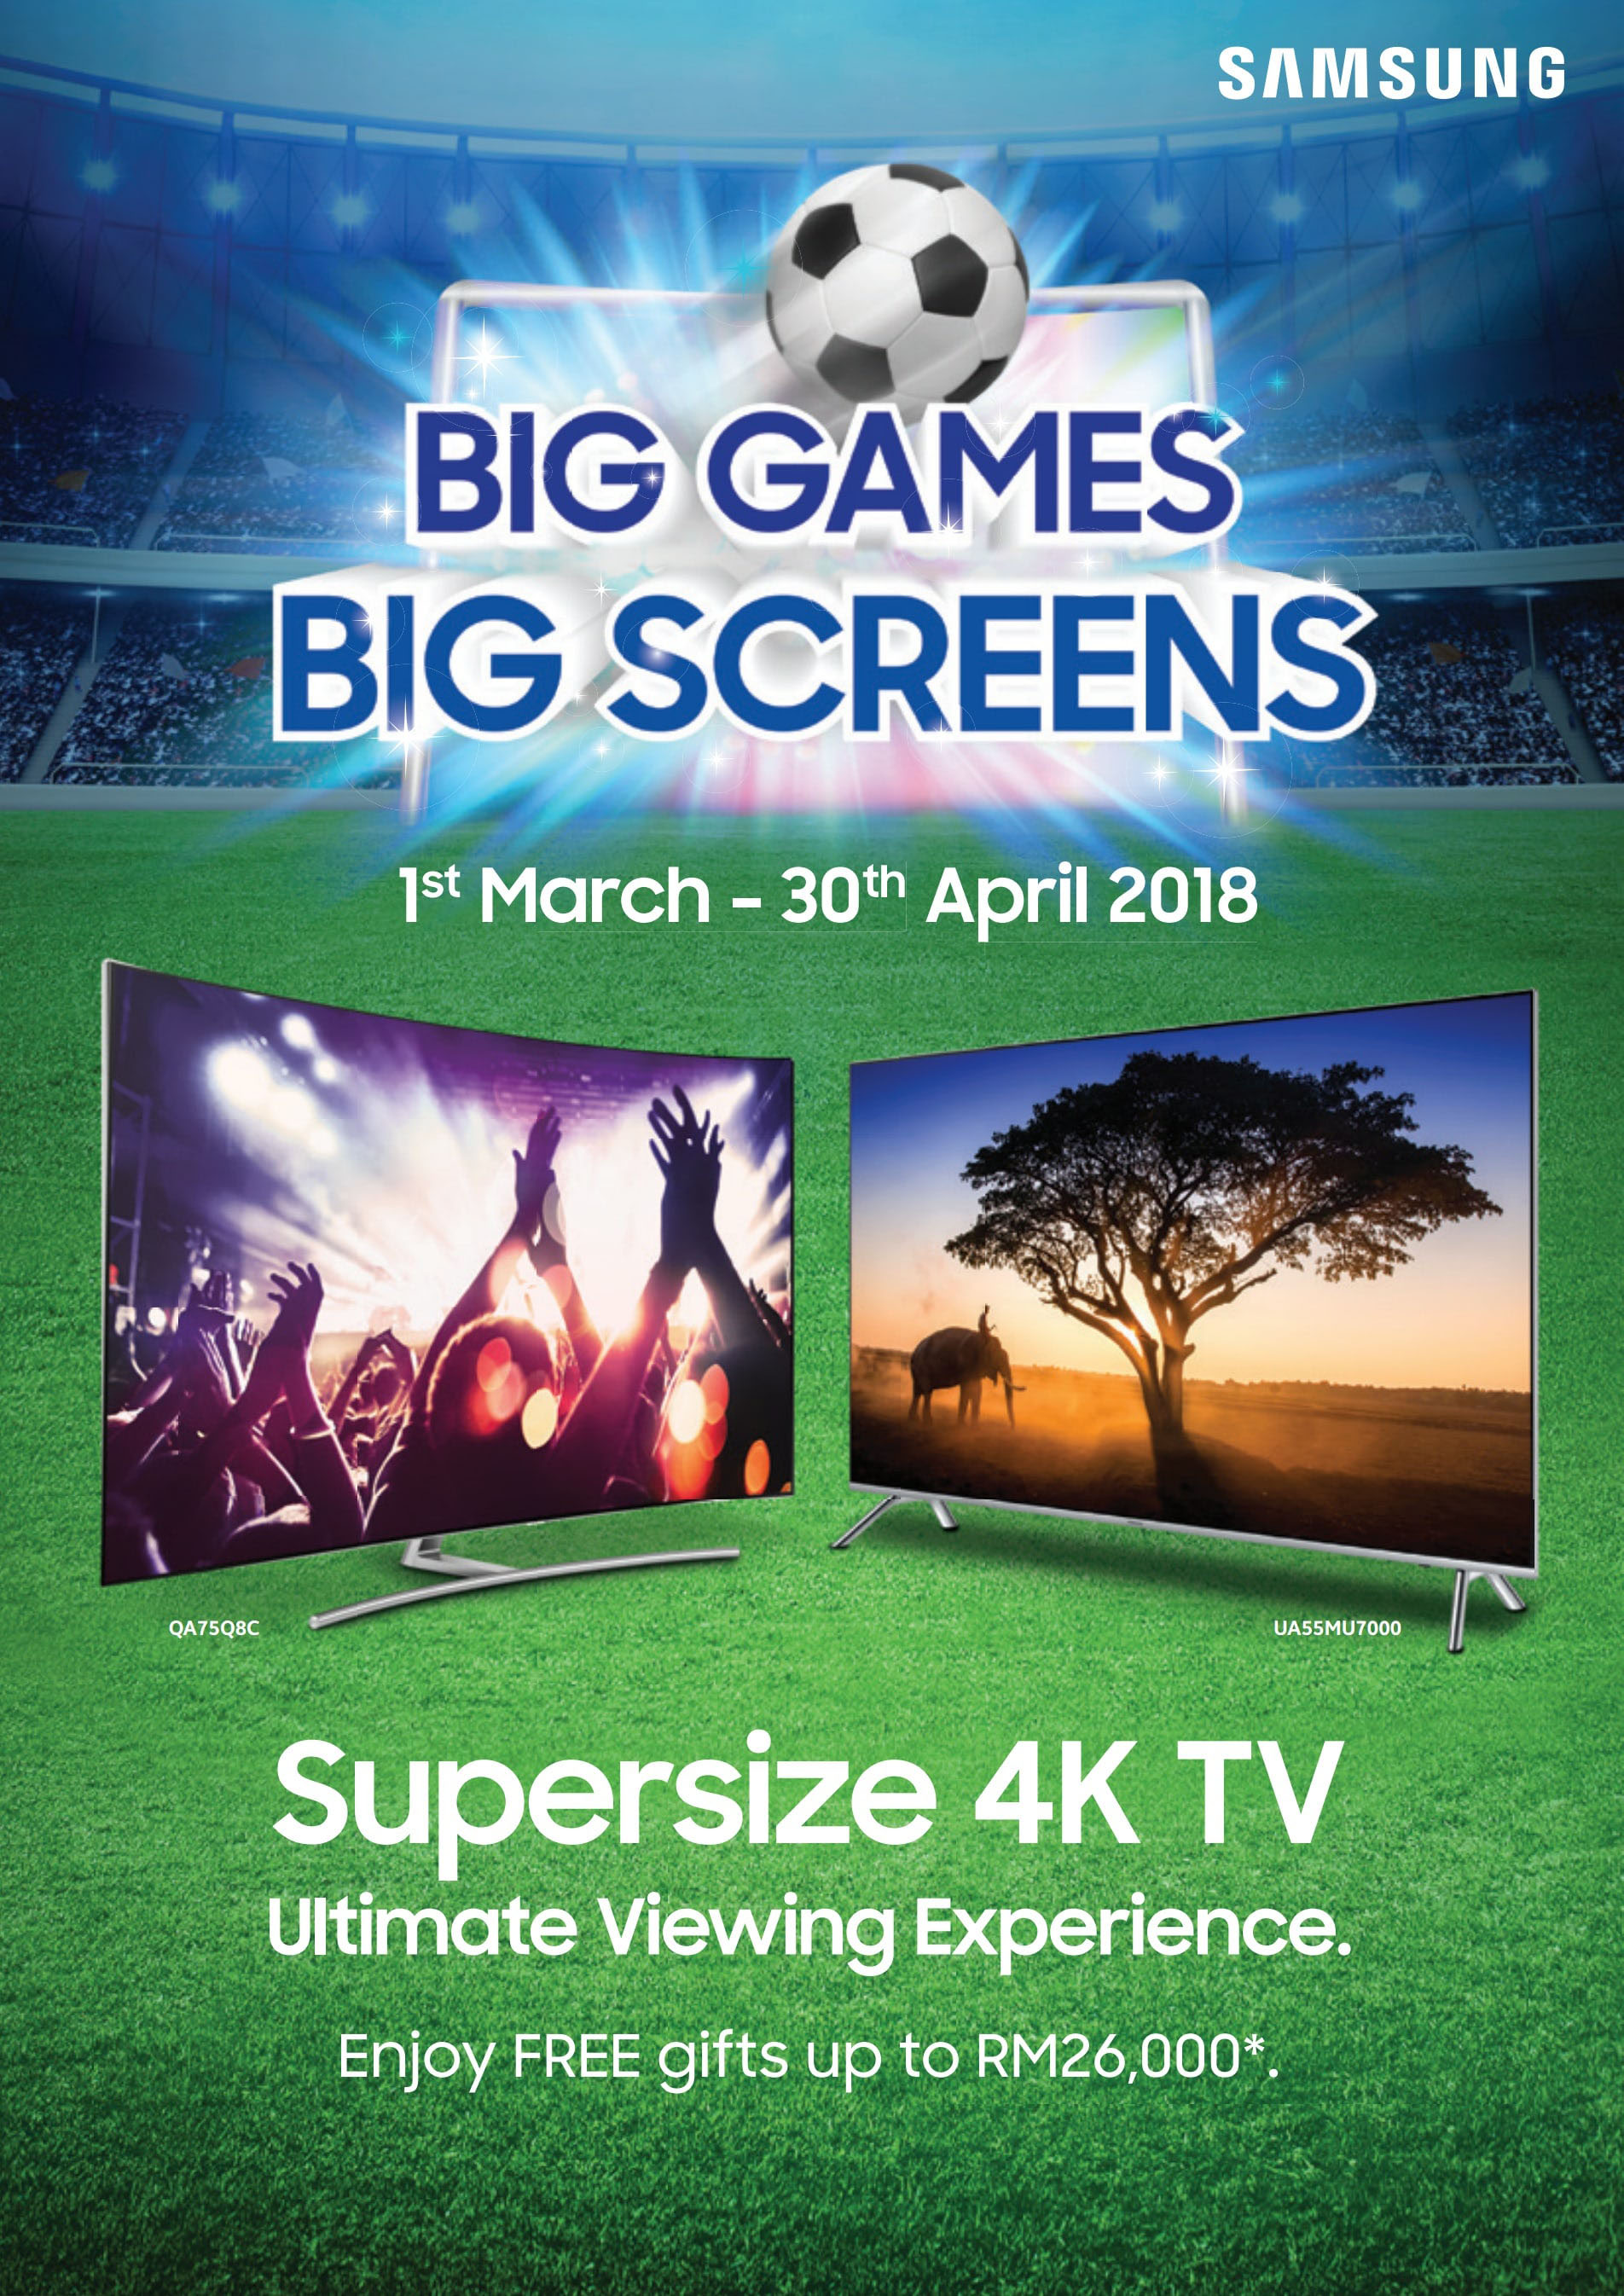 Big Games, Big Screens campaign